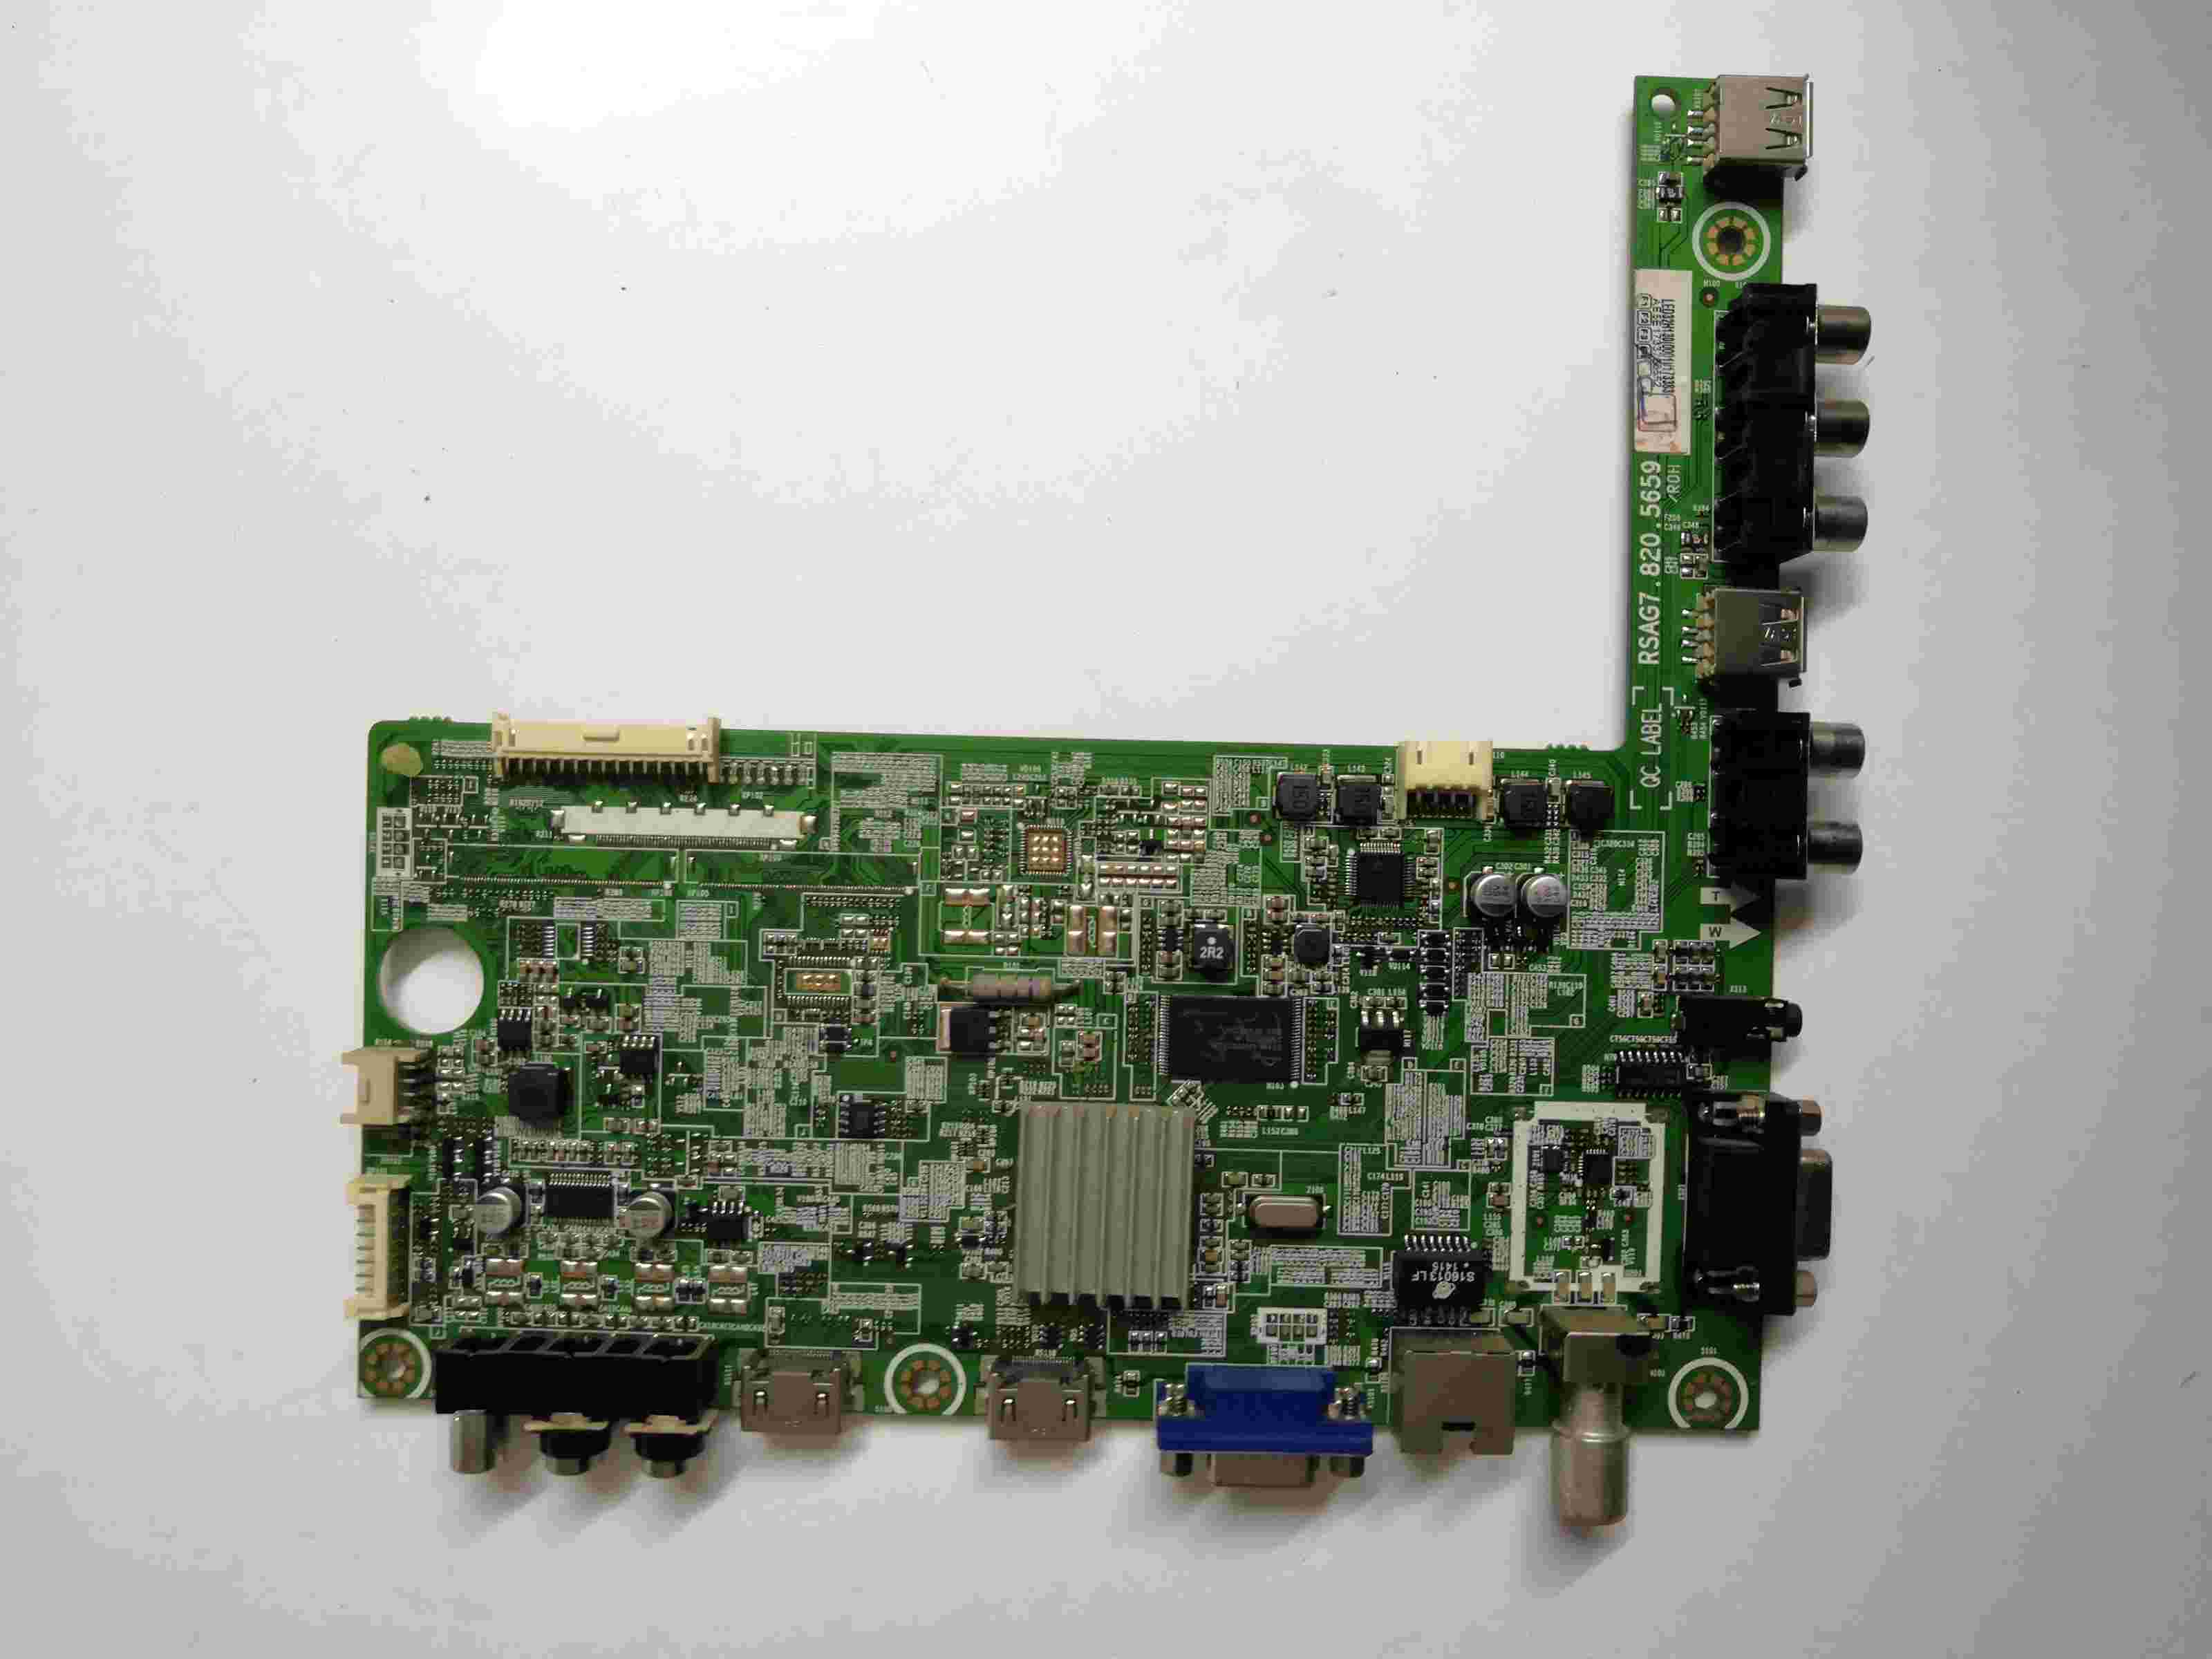 Audio & Video Replacement Parts Accessories & Parts Main Board Power Board Circuit Logic Board Constant Current Board Led 32h130 Motherboard Rsag7.820.5659 Screen He315gh-e88